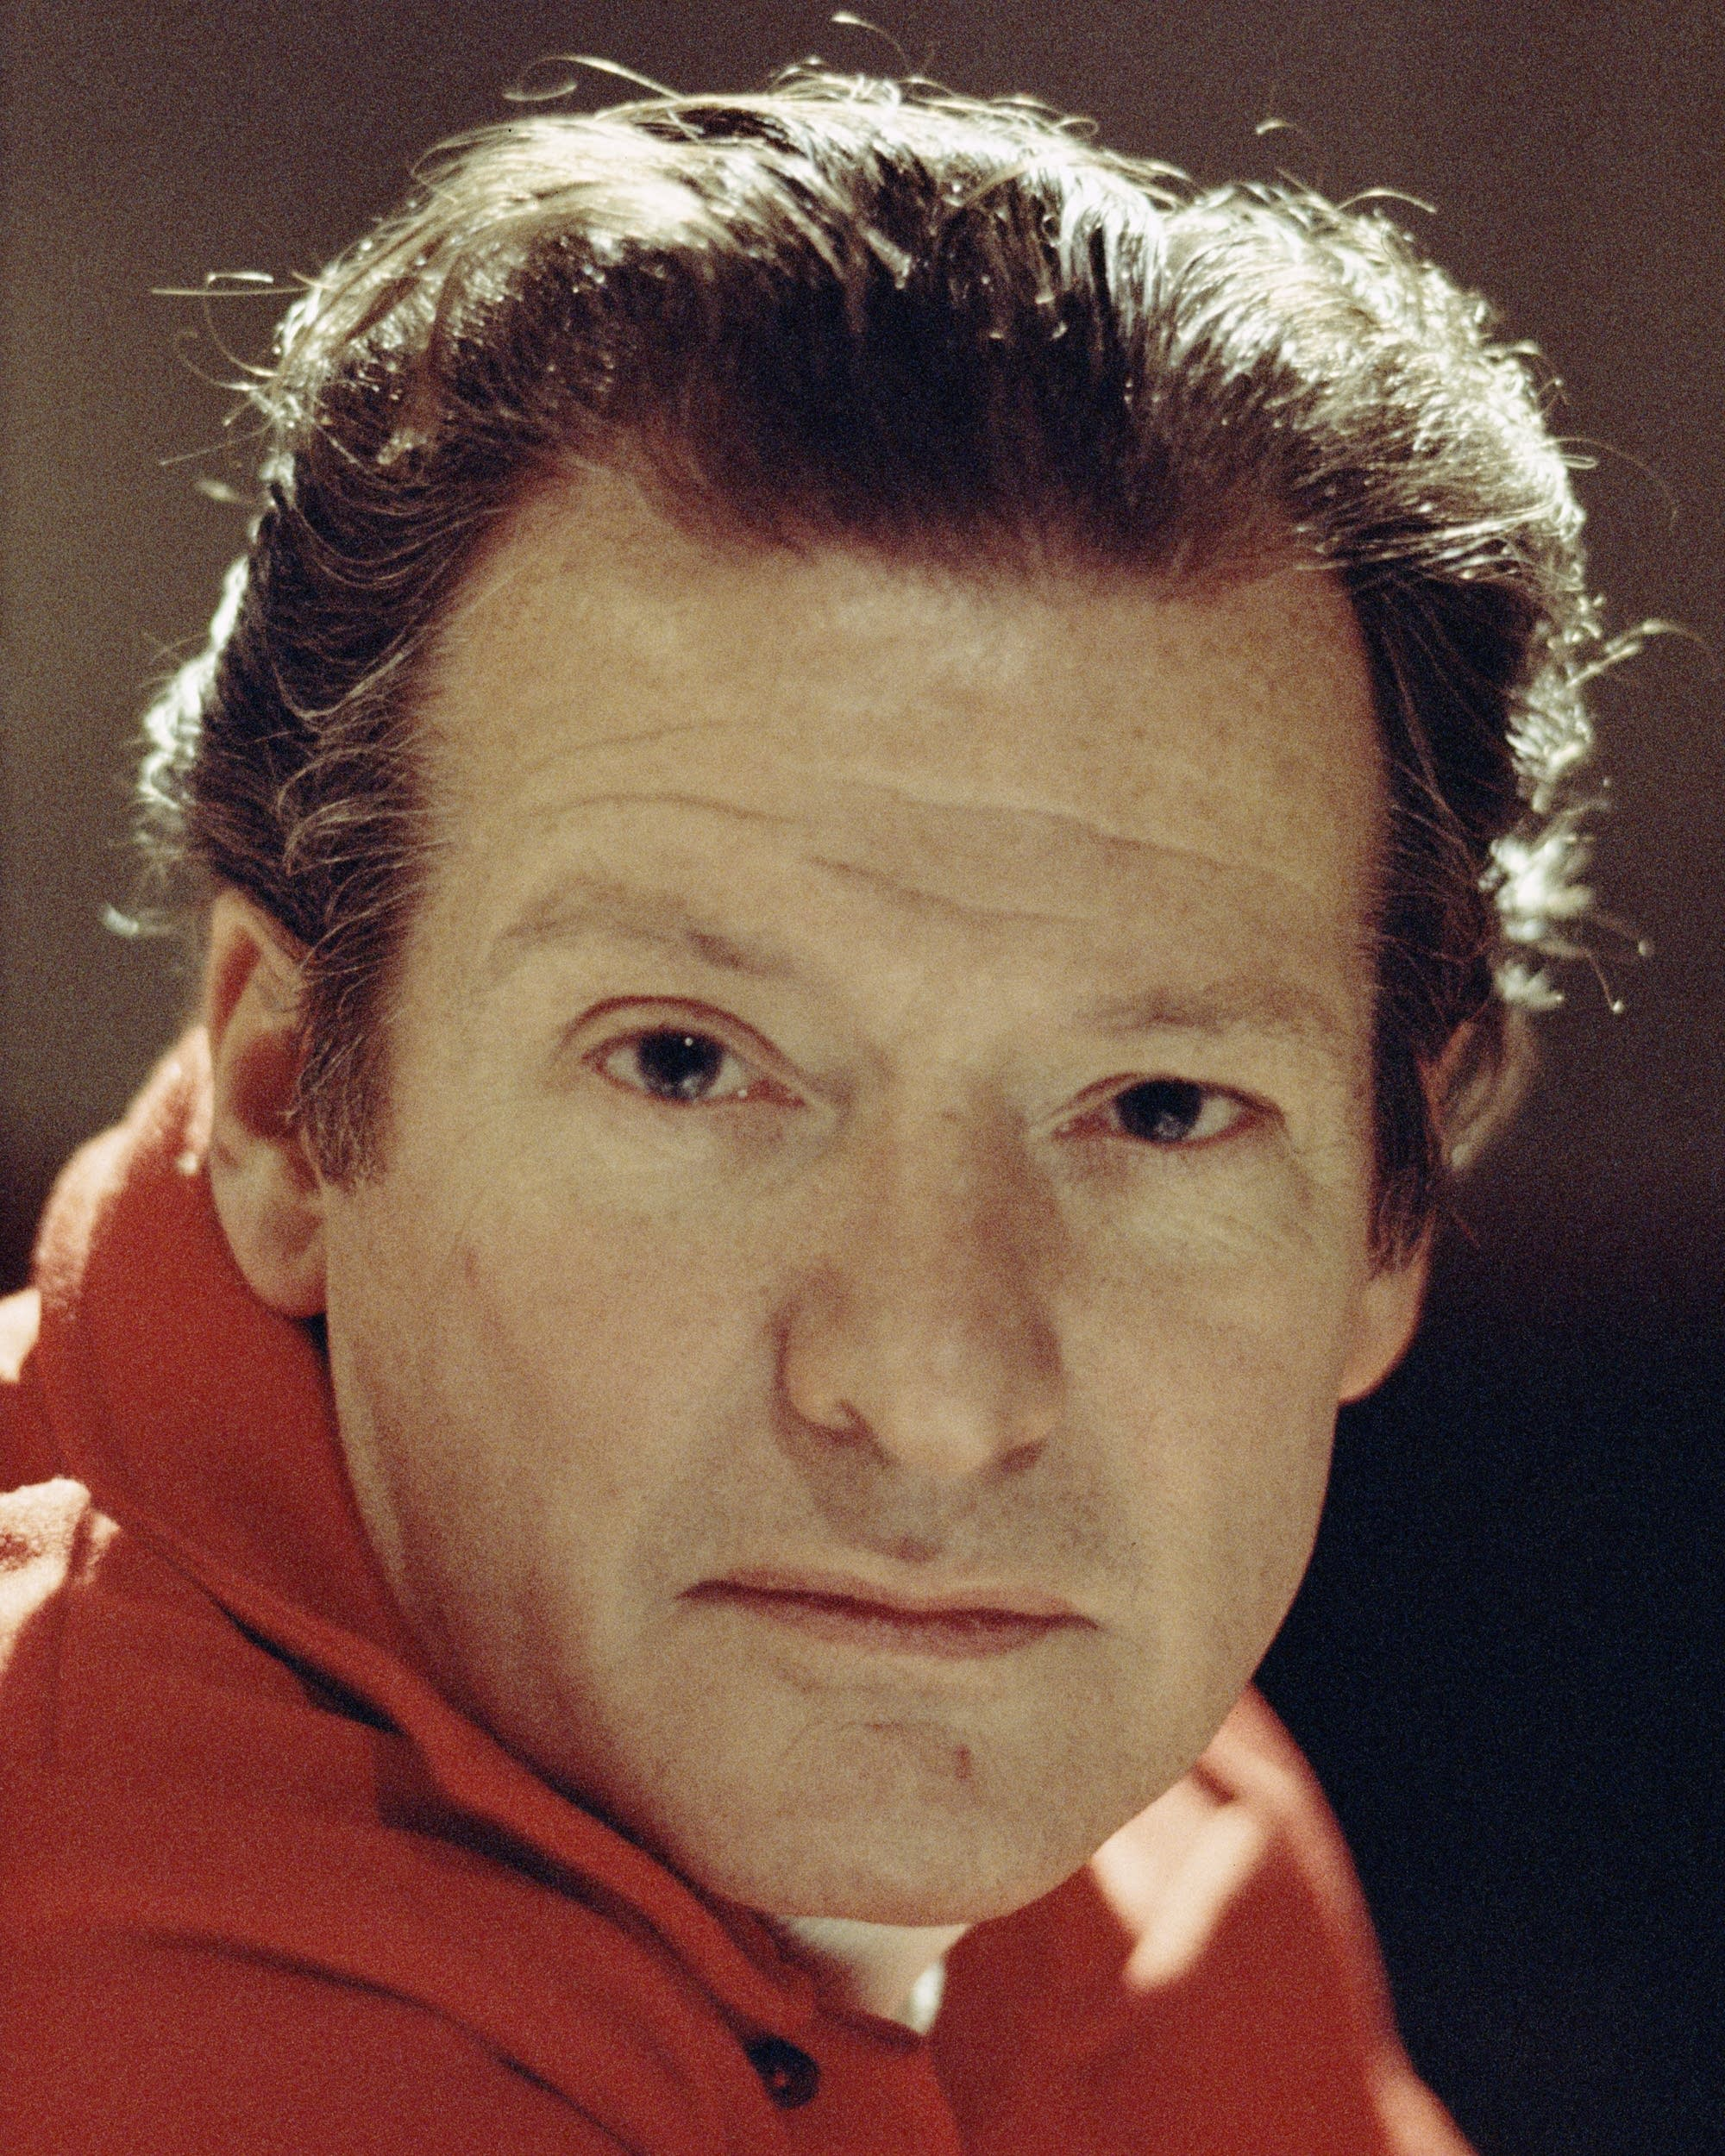 Neville Marriner, circa 1970